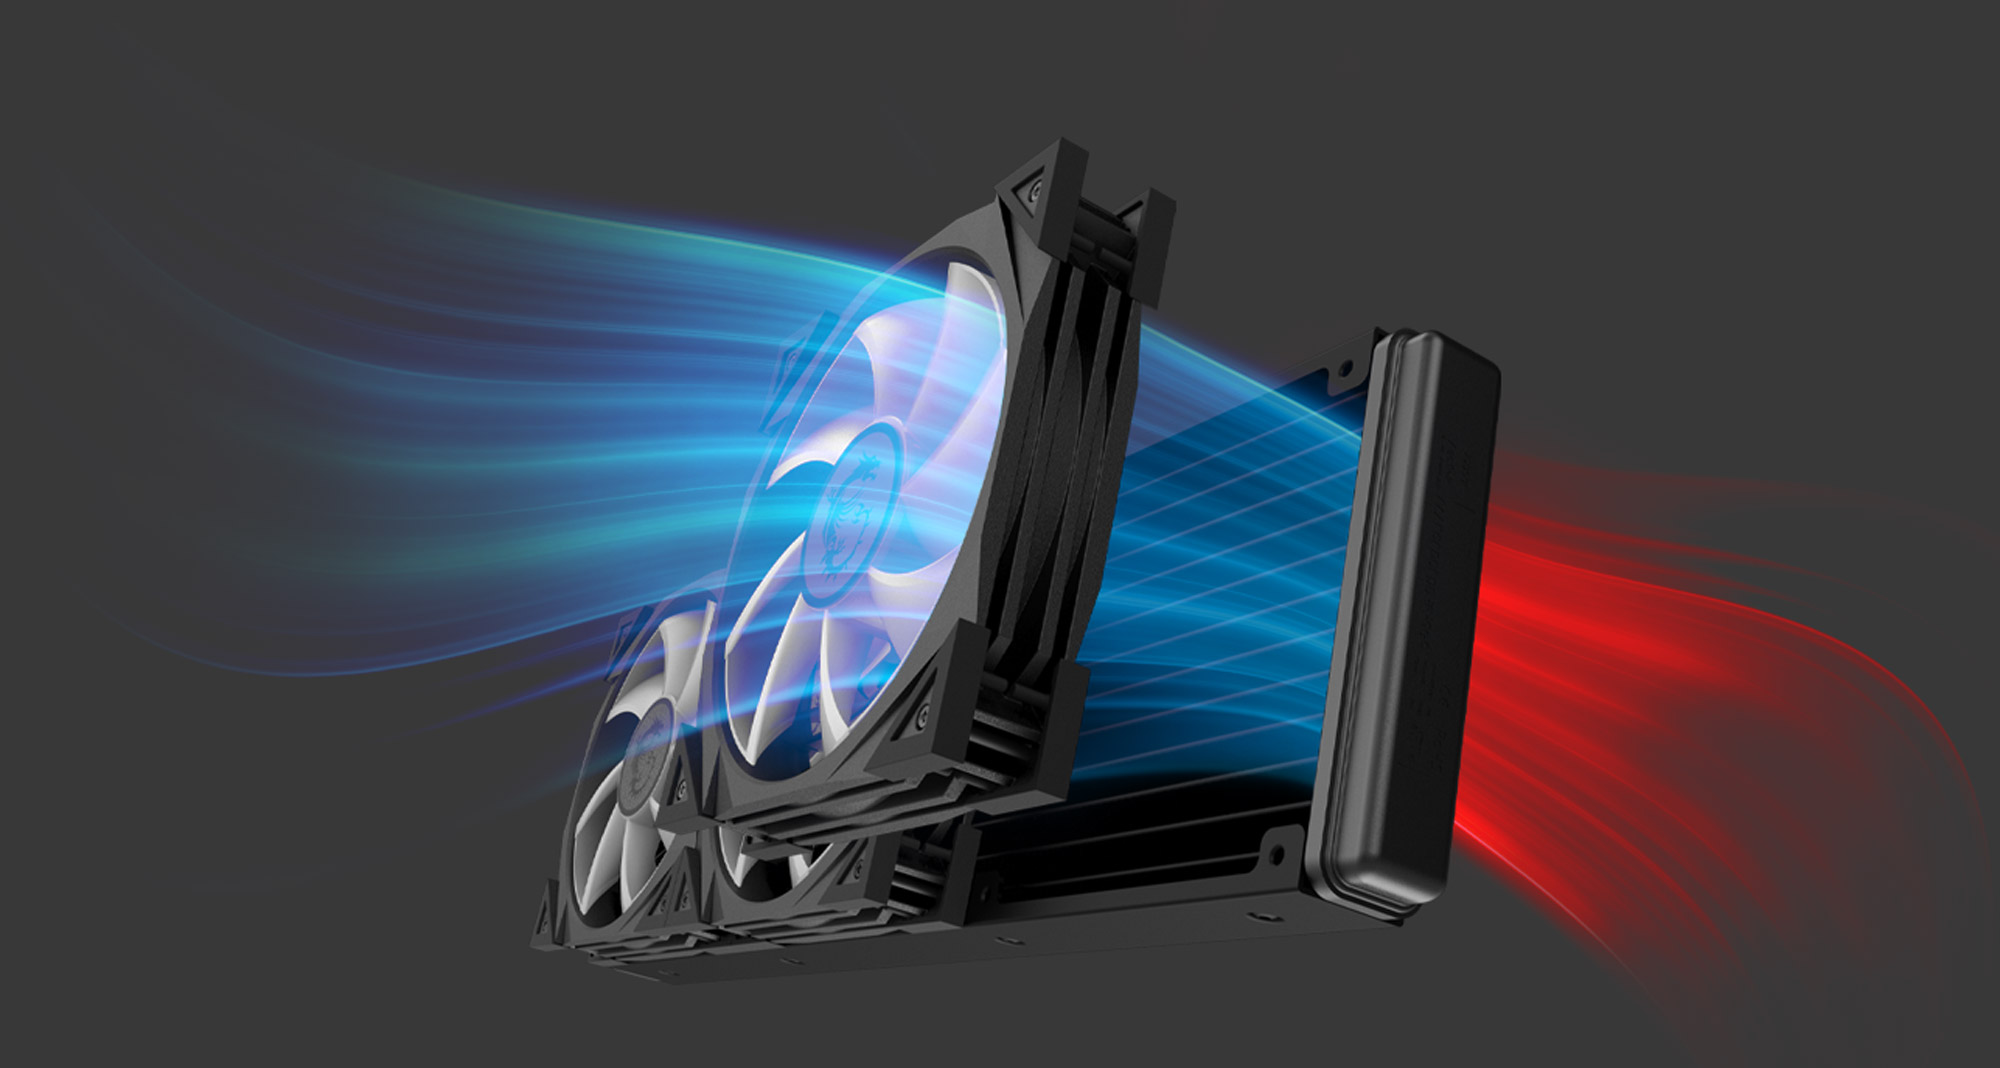 msi liquid cooling k360